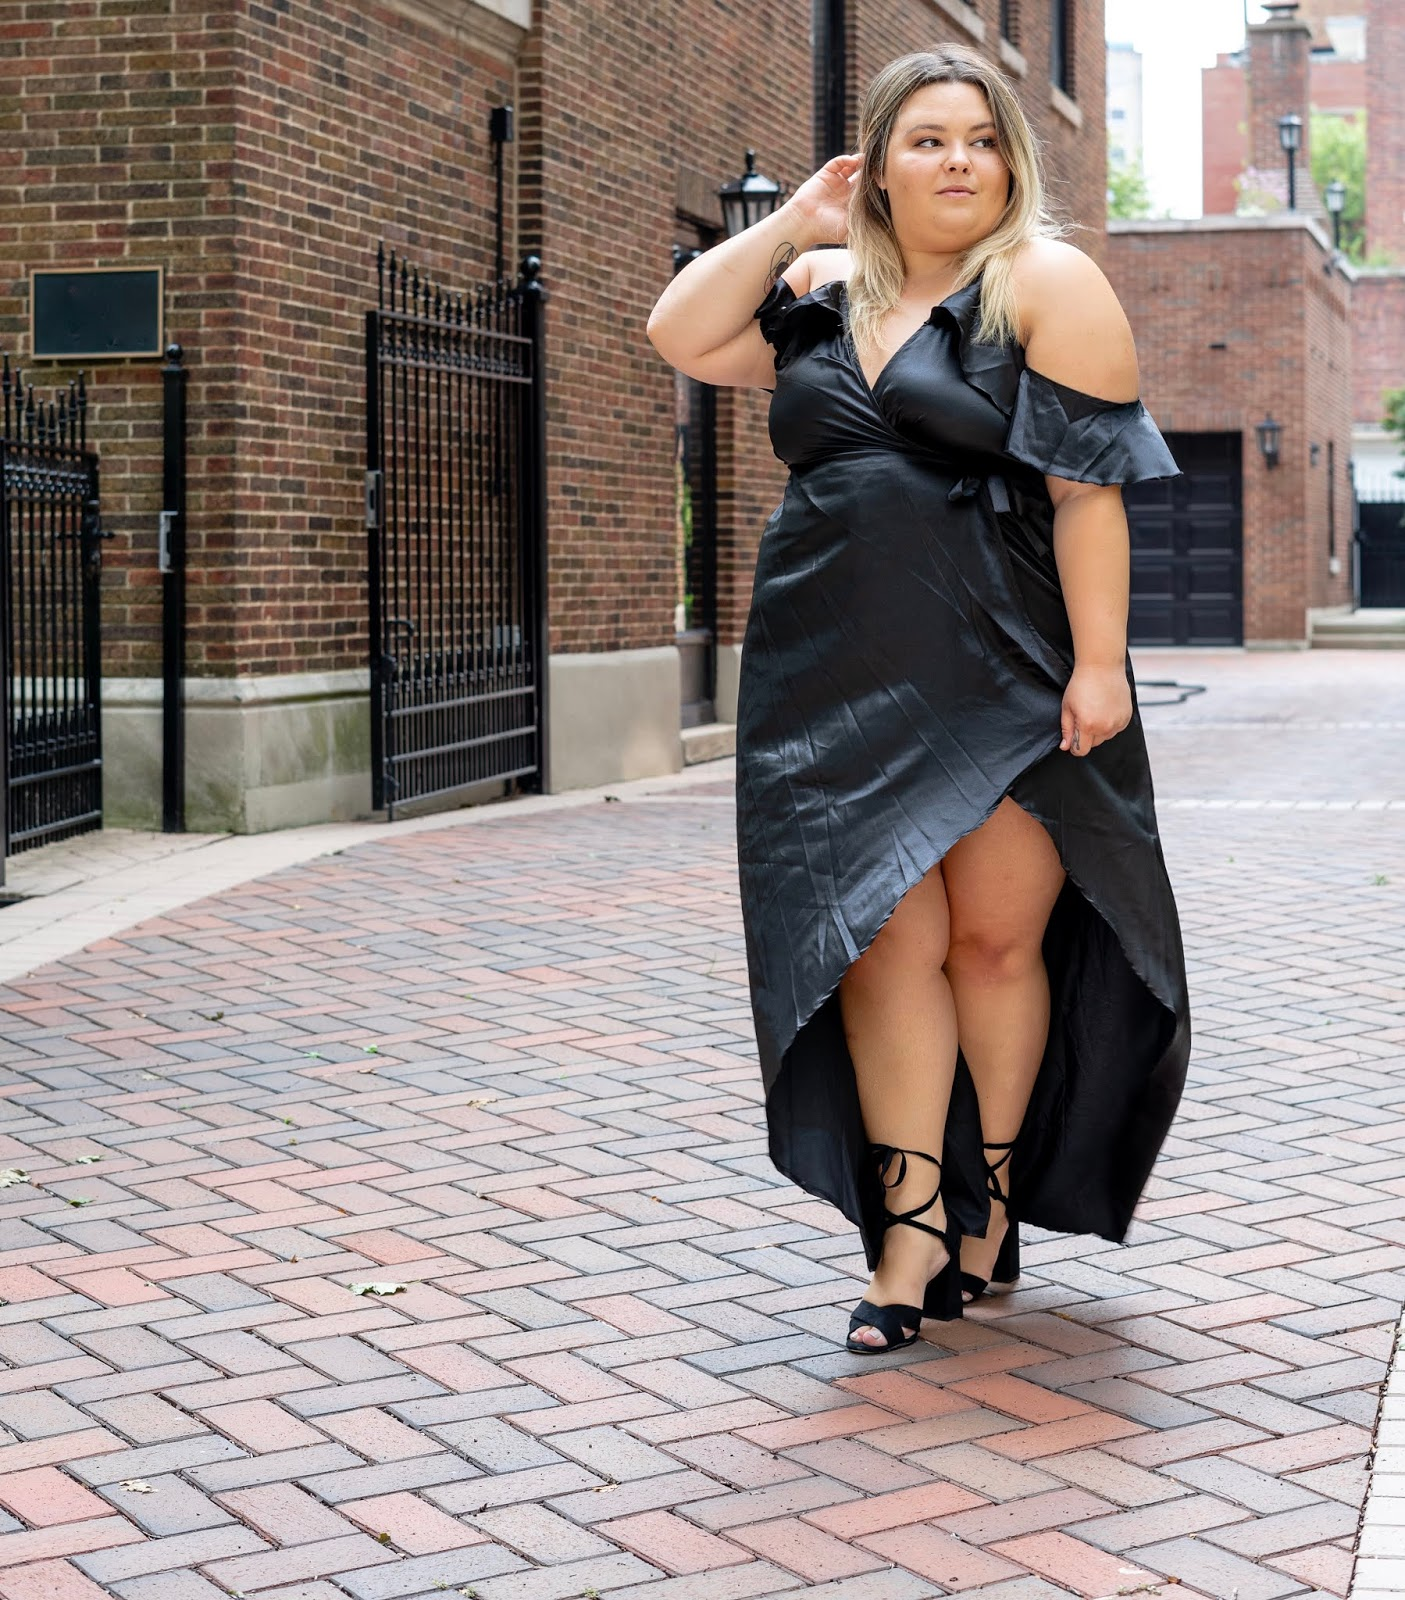 Chicago fashion blogger, Chicago plus size fashion blogger, natalie Craig, natalie in the city, plus size fashion, Chicago fashion, plus size fashion blogger, eff your beauty standards, fatshion, skorch magazine, Chicago model, plus size model, plus size petite, affordable plus size clothing, embrace your curves, plus model magazine,  petite plus size, body positivity, body positive, prettylittlething, satin wrap dress, silk wrap dress